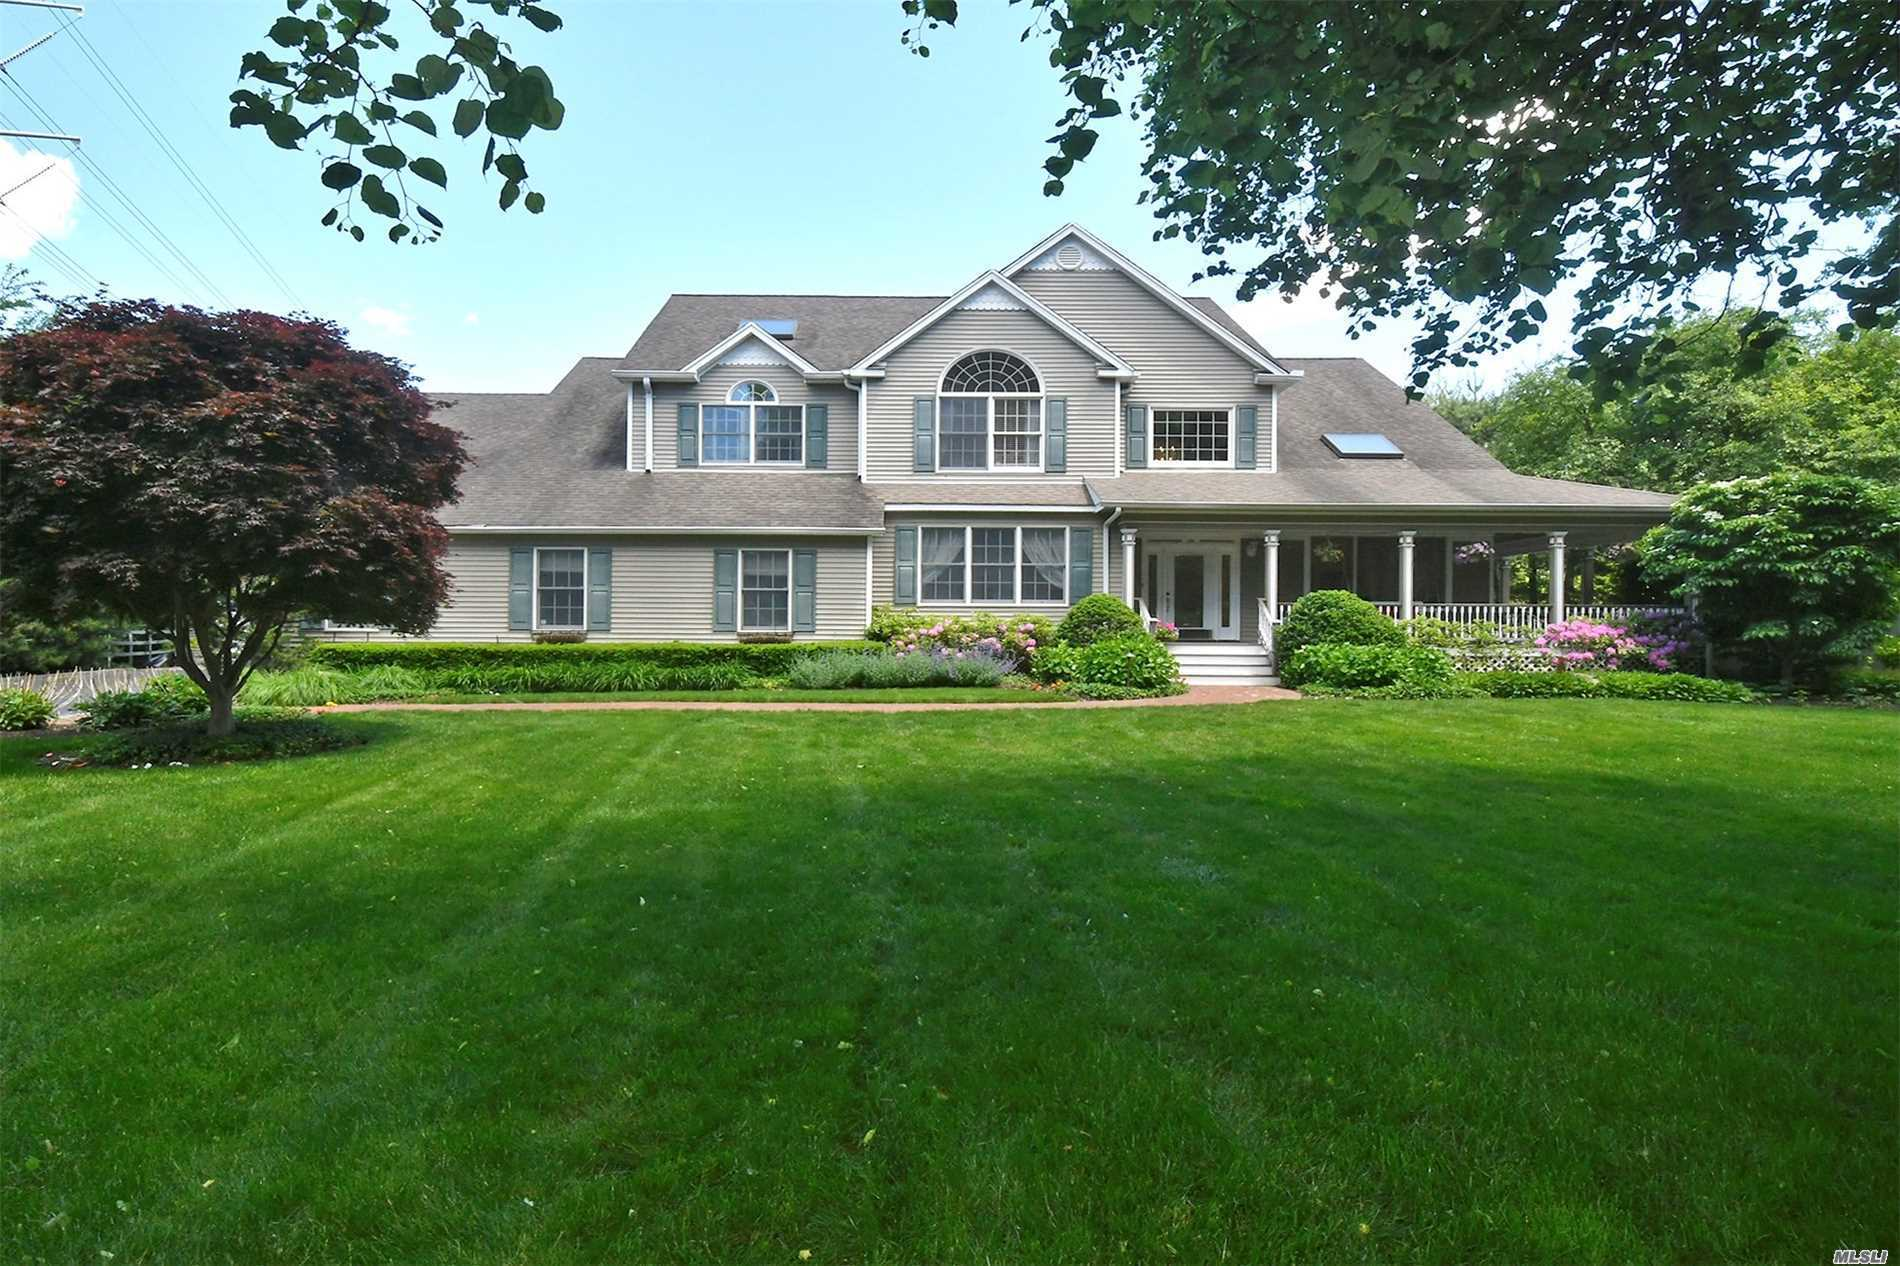 Photo of home for sale at 277 Pine Acre Blvd, Dix Hills NY